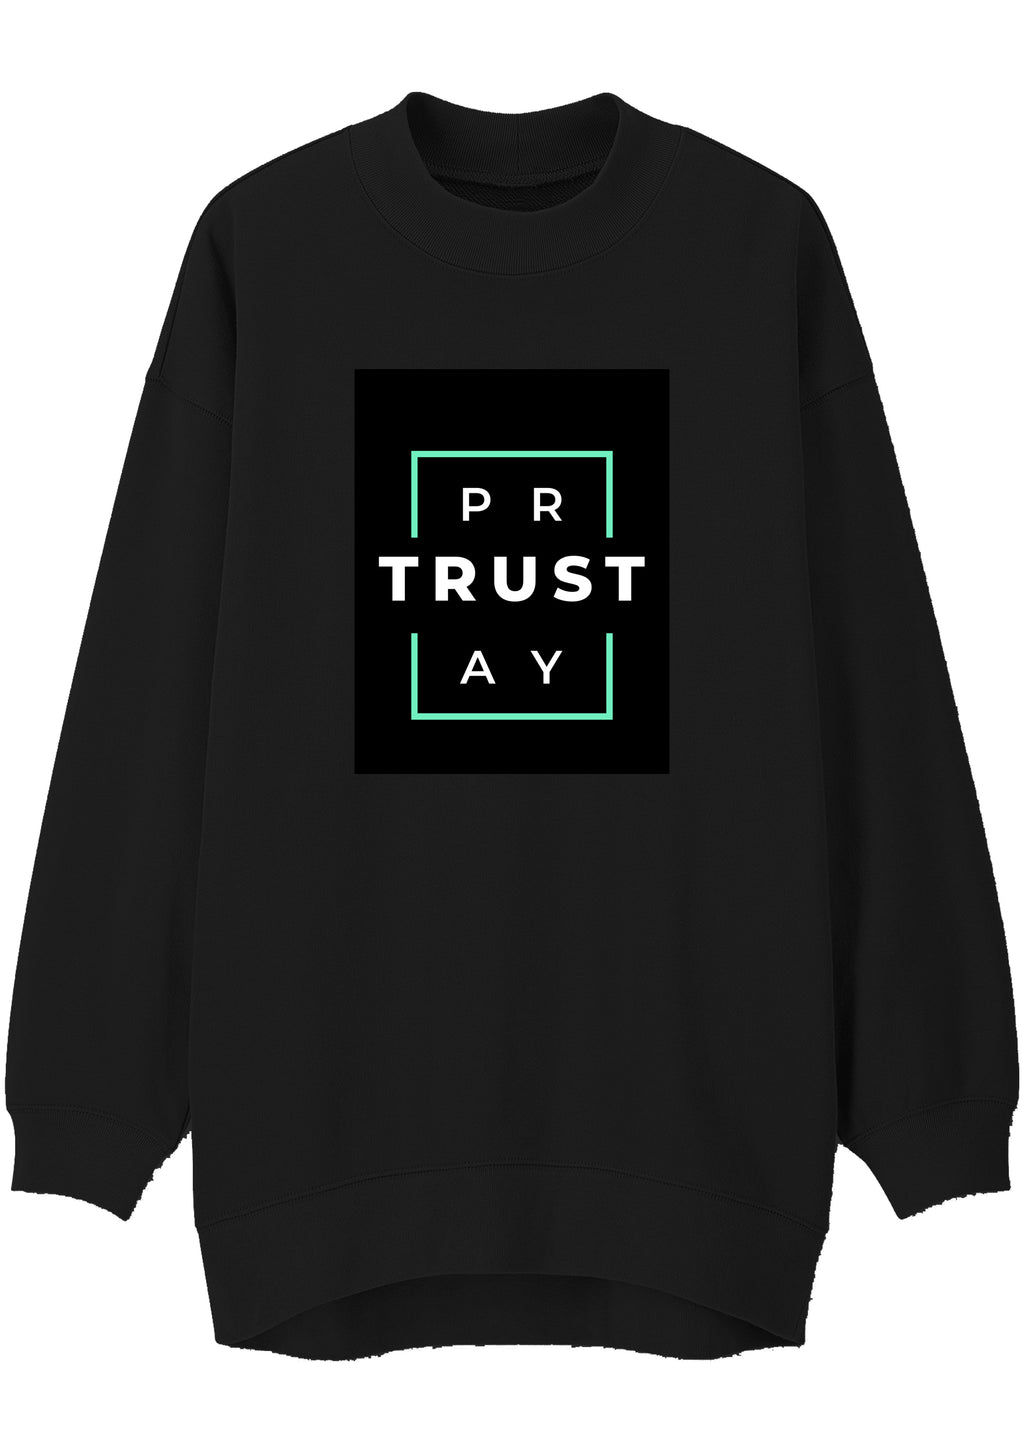 Unisex TRUST GOD Print Mock Neck Relaxed Sweatshirt (Black)